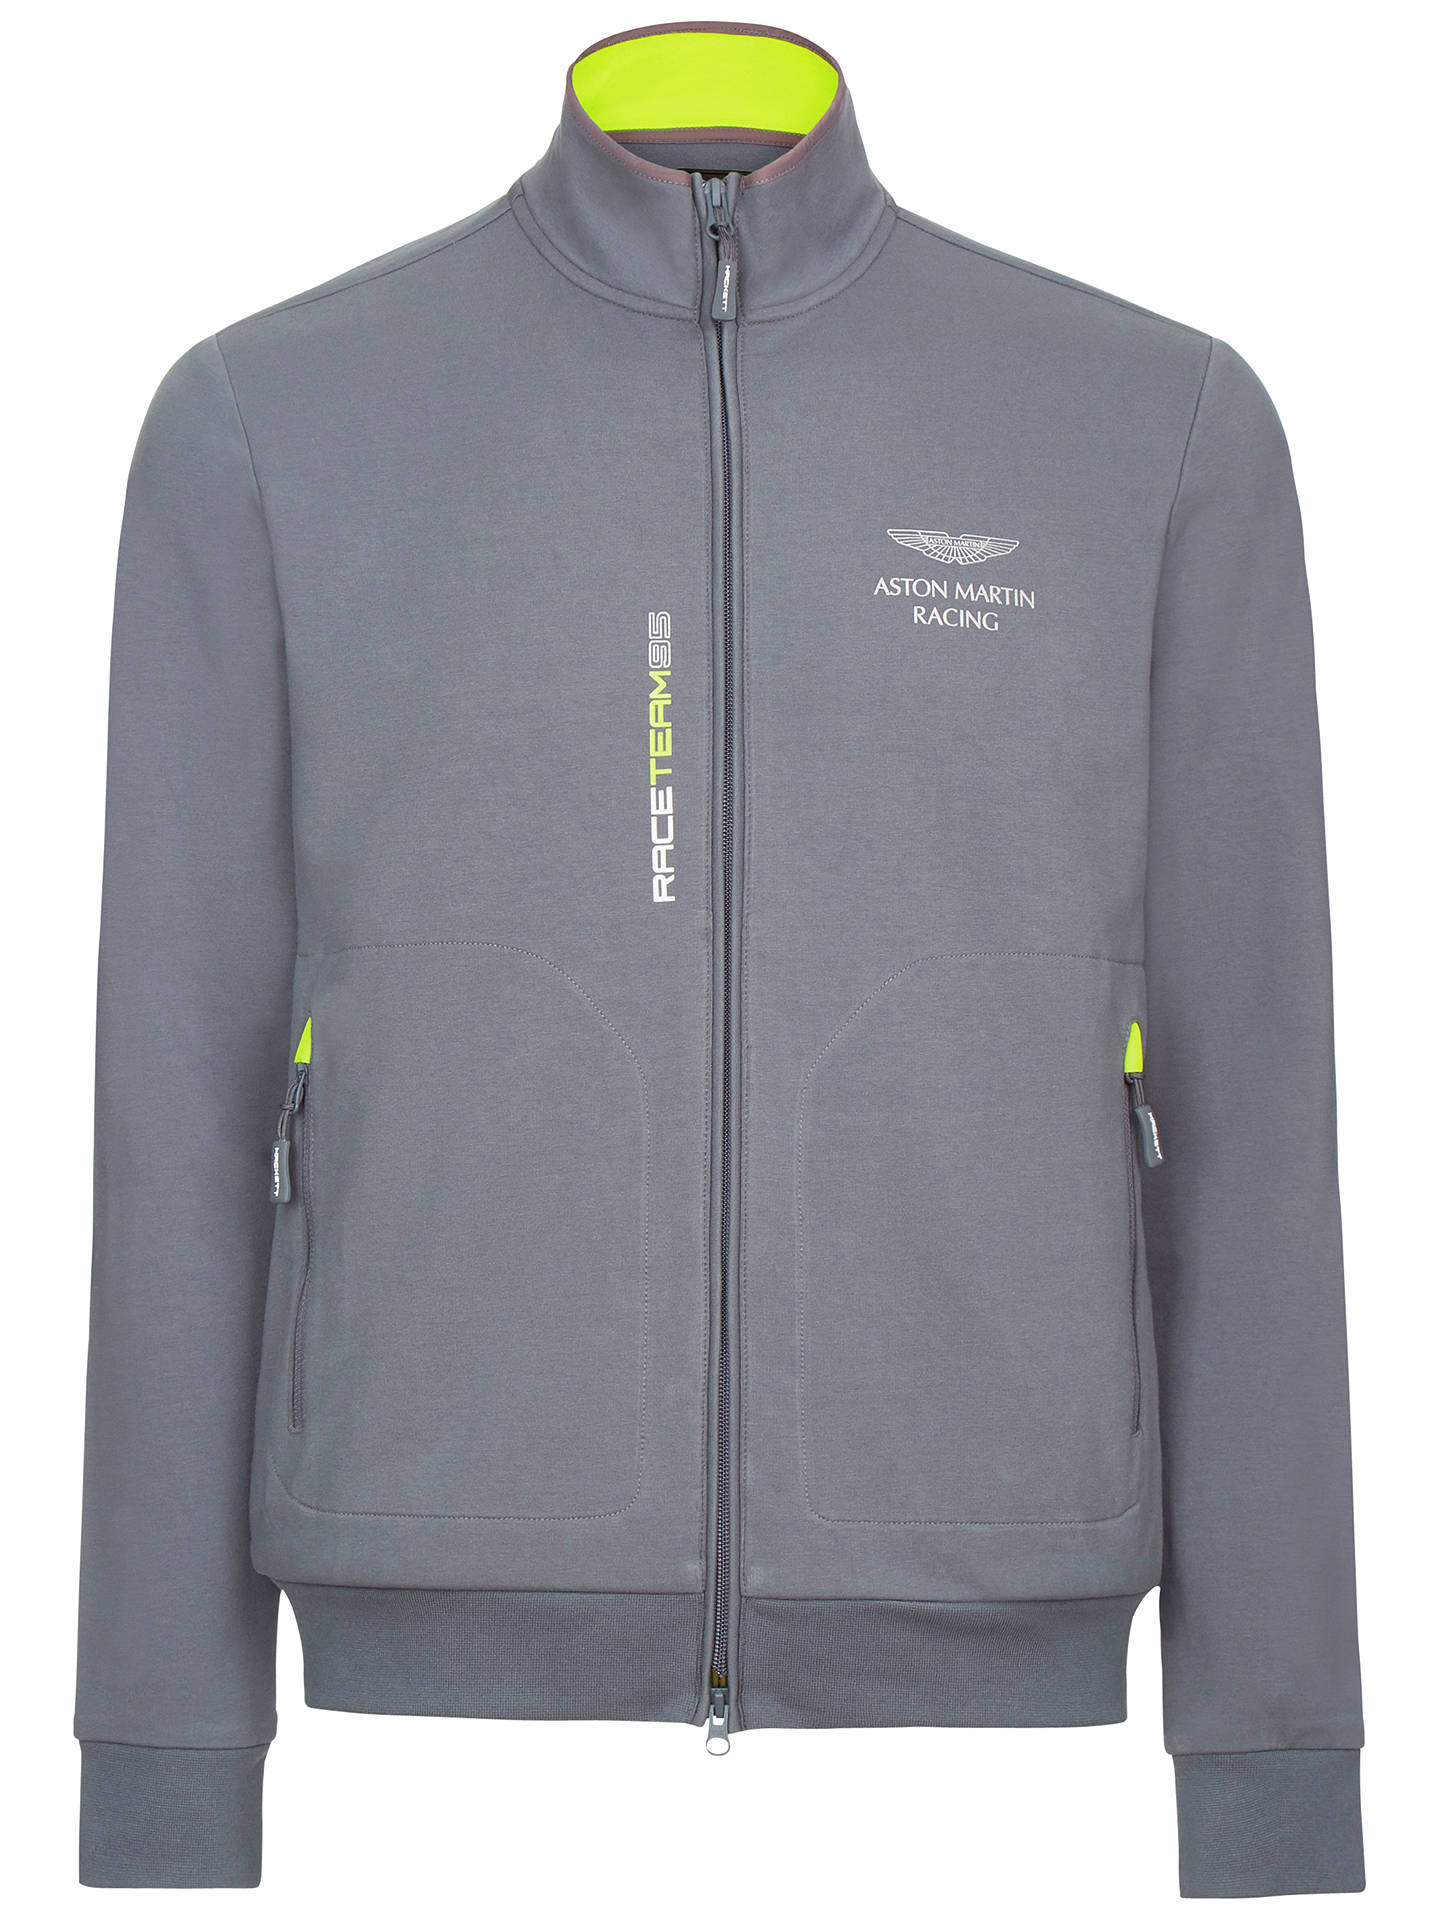 Hackett London Aston Martin Racing Full Zip Hooded Jacket Steel